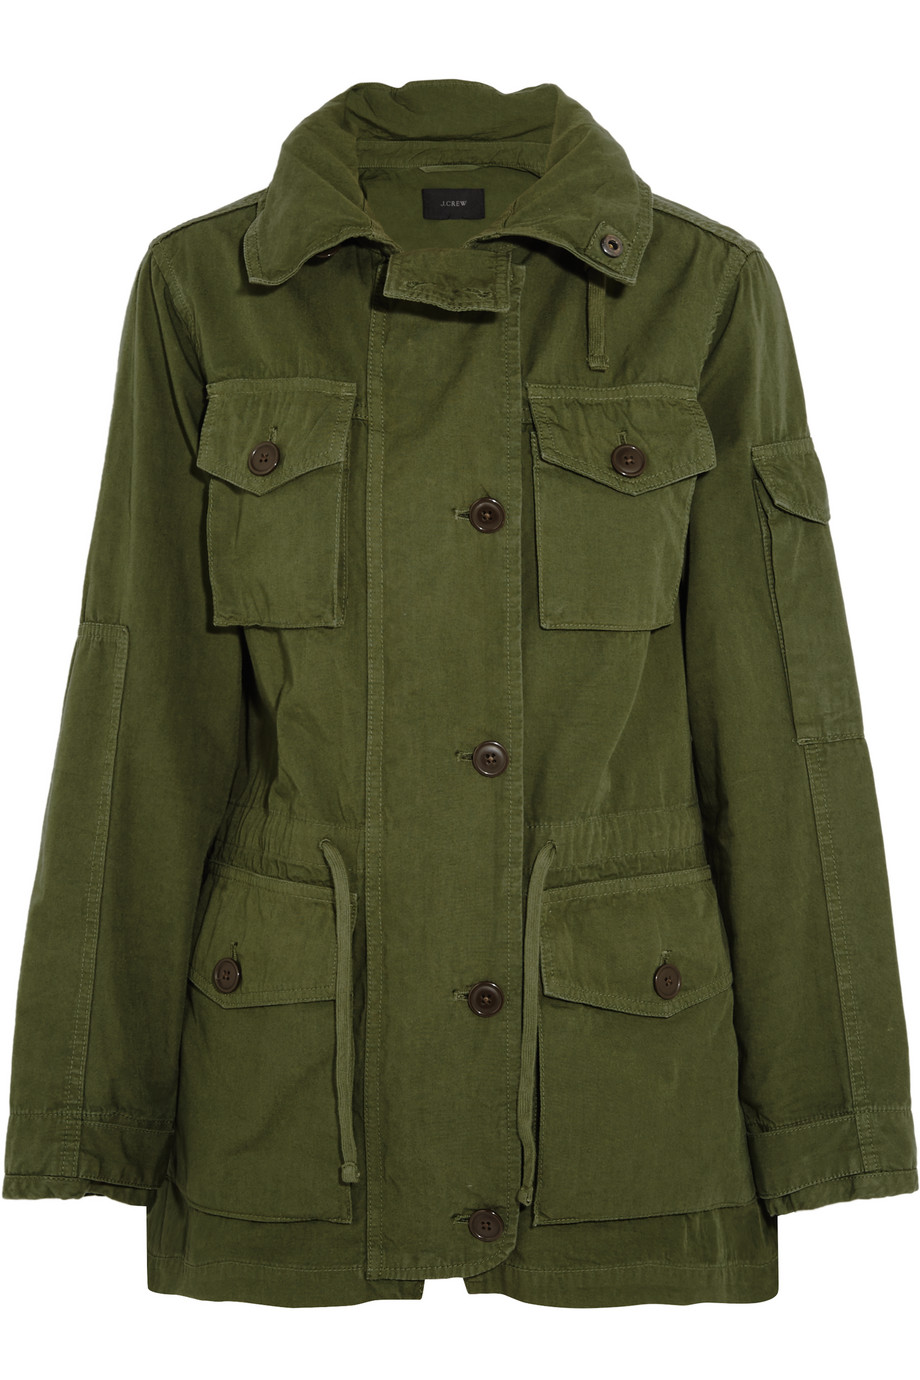 J.Crew Hooded Cotton-Canvas Field Jacket, Size: M